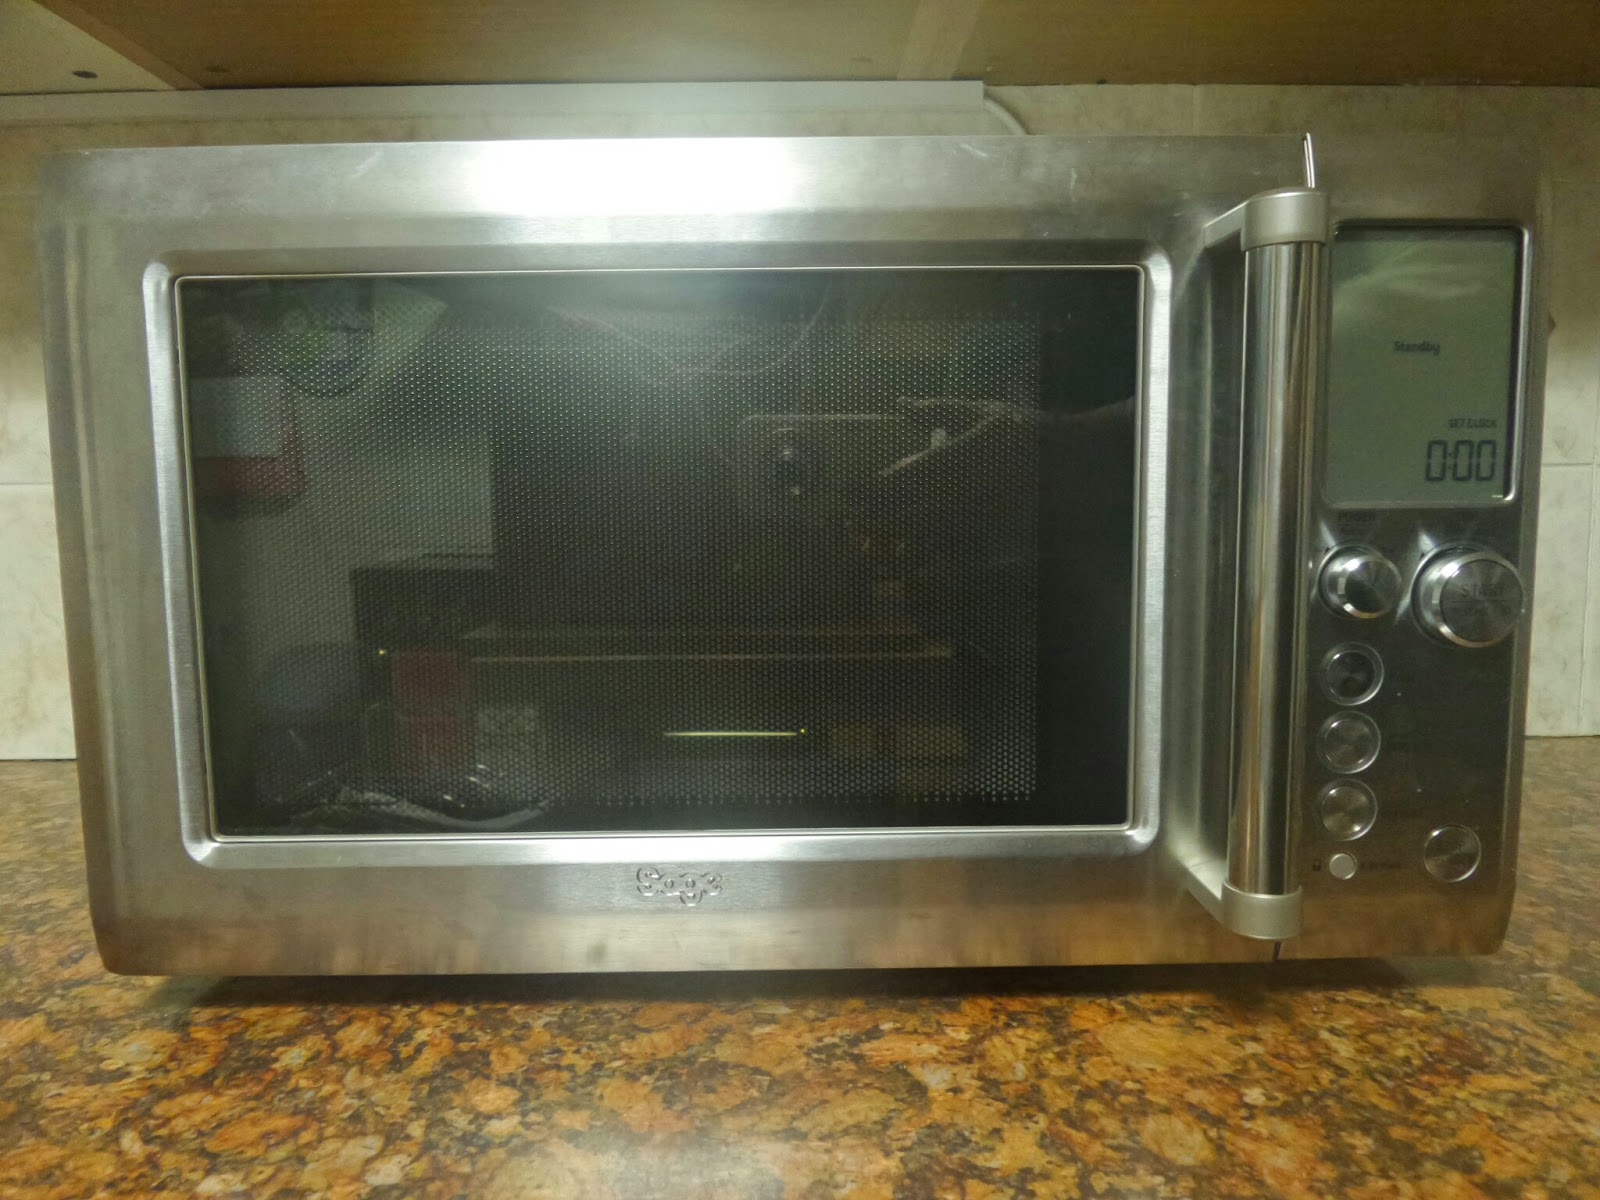 Microwaves are perfect for cooking a meal in minutes!